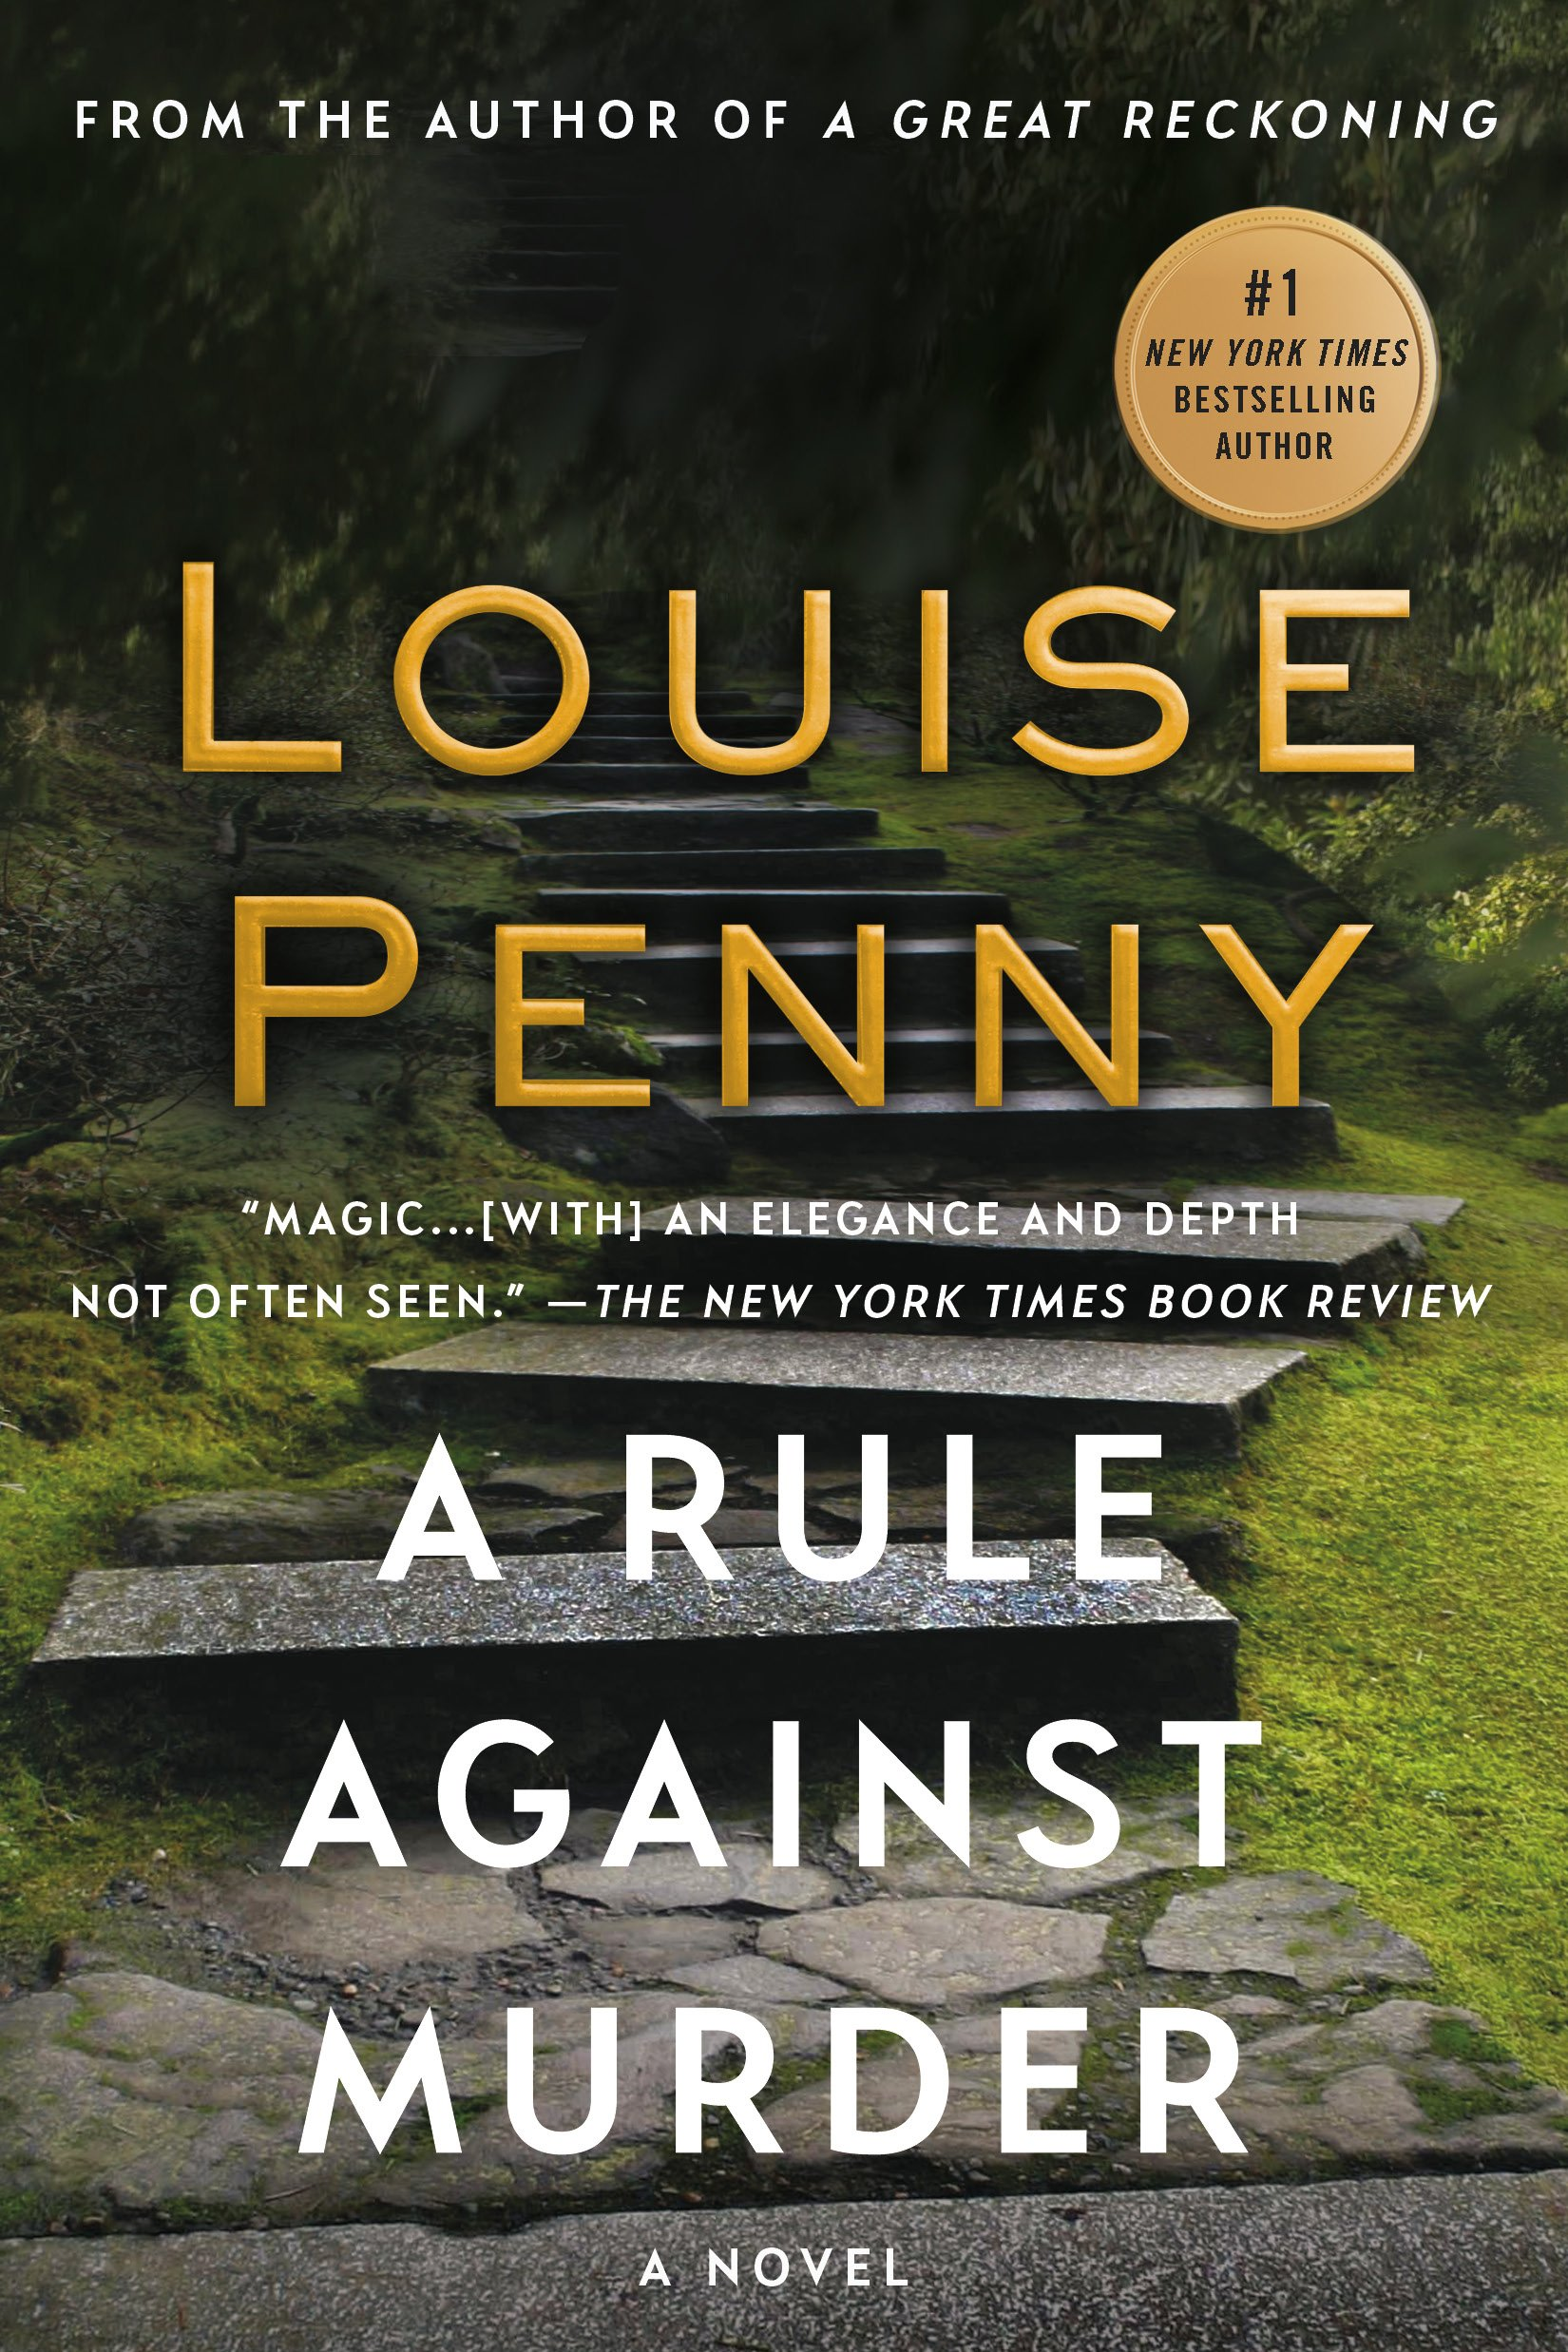 books by louise penny in chronological order